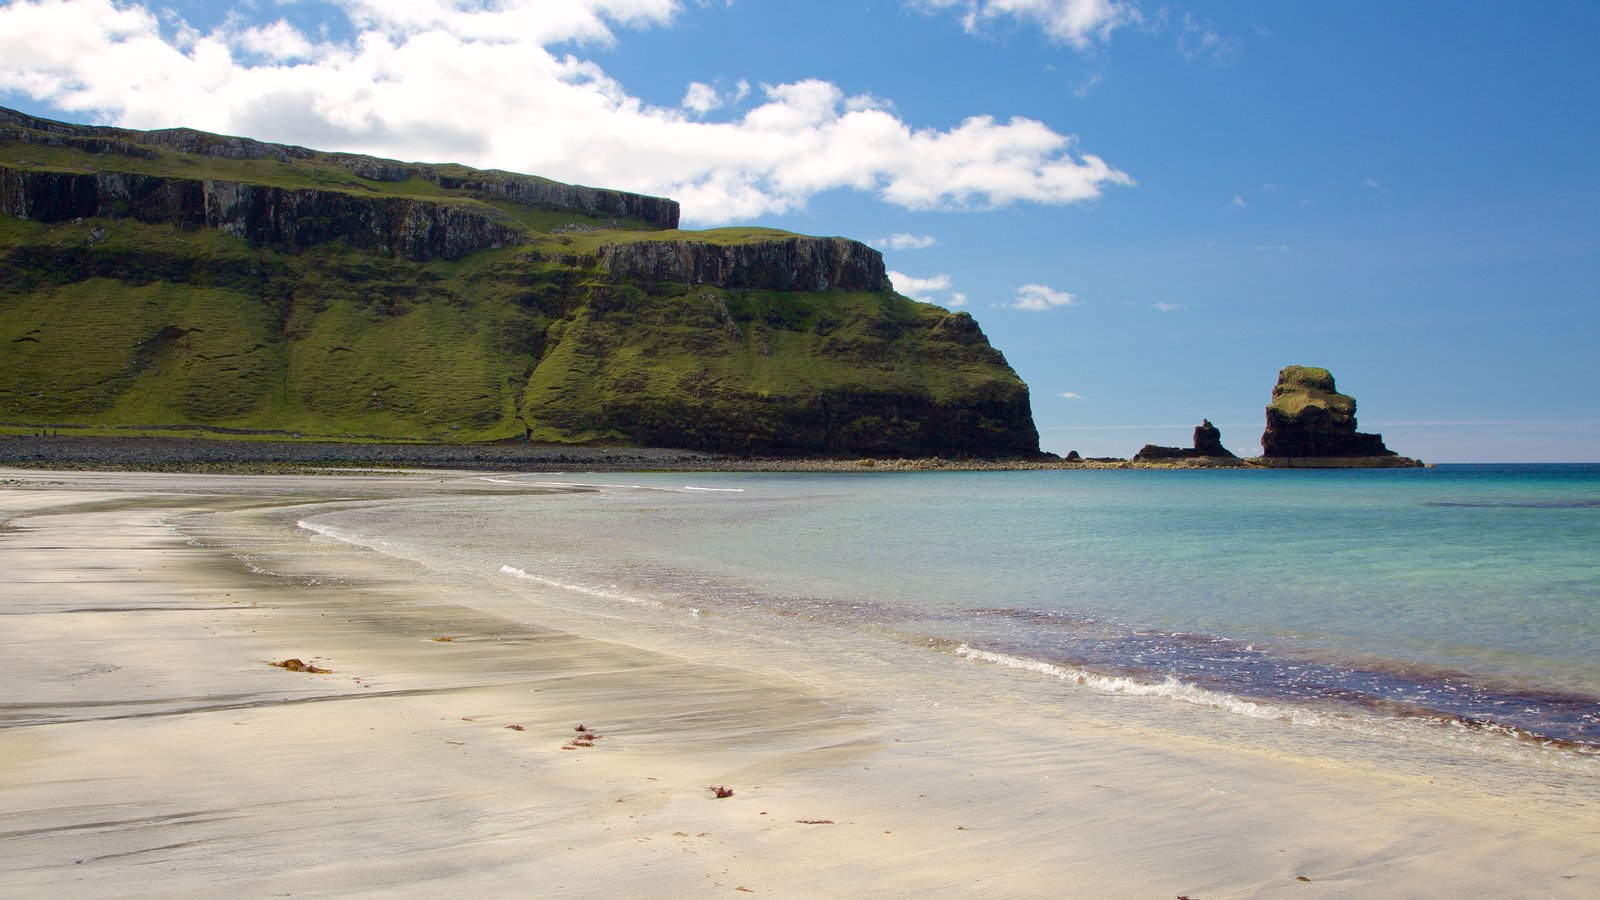 Isle of Skye featuring rugged coastline and a beach